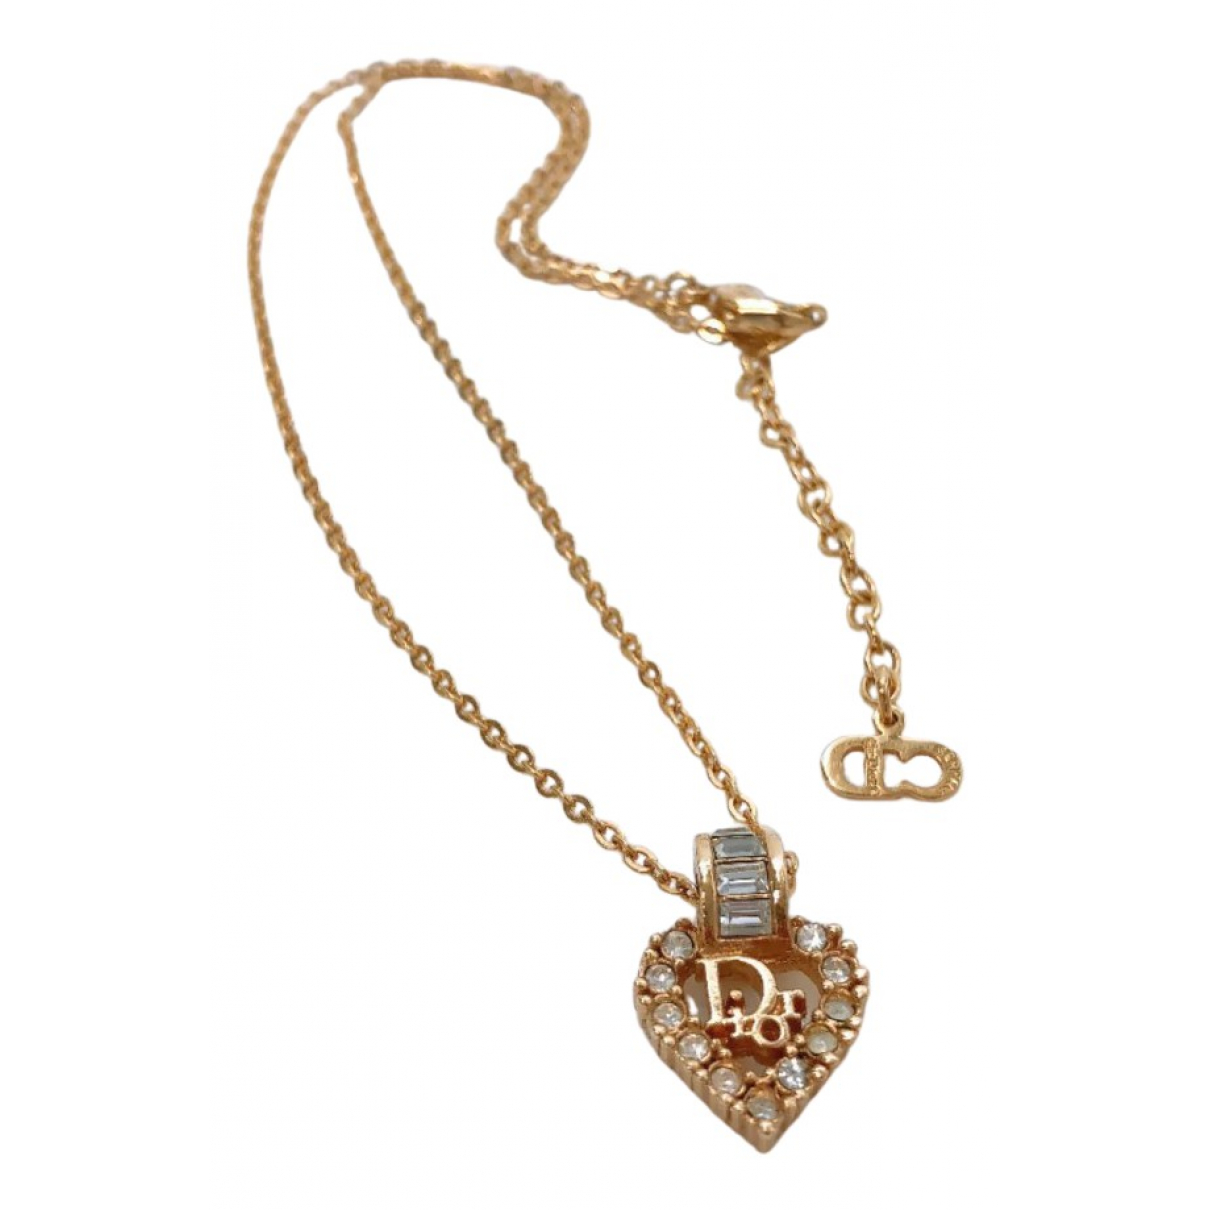 Christian Dior \N Kette in  Gold Metall